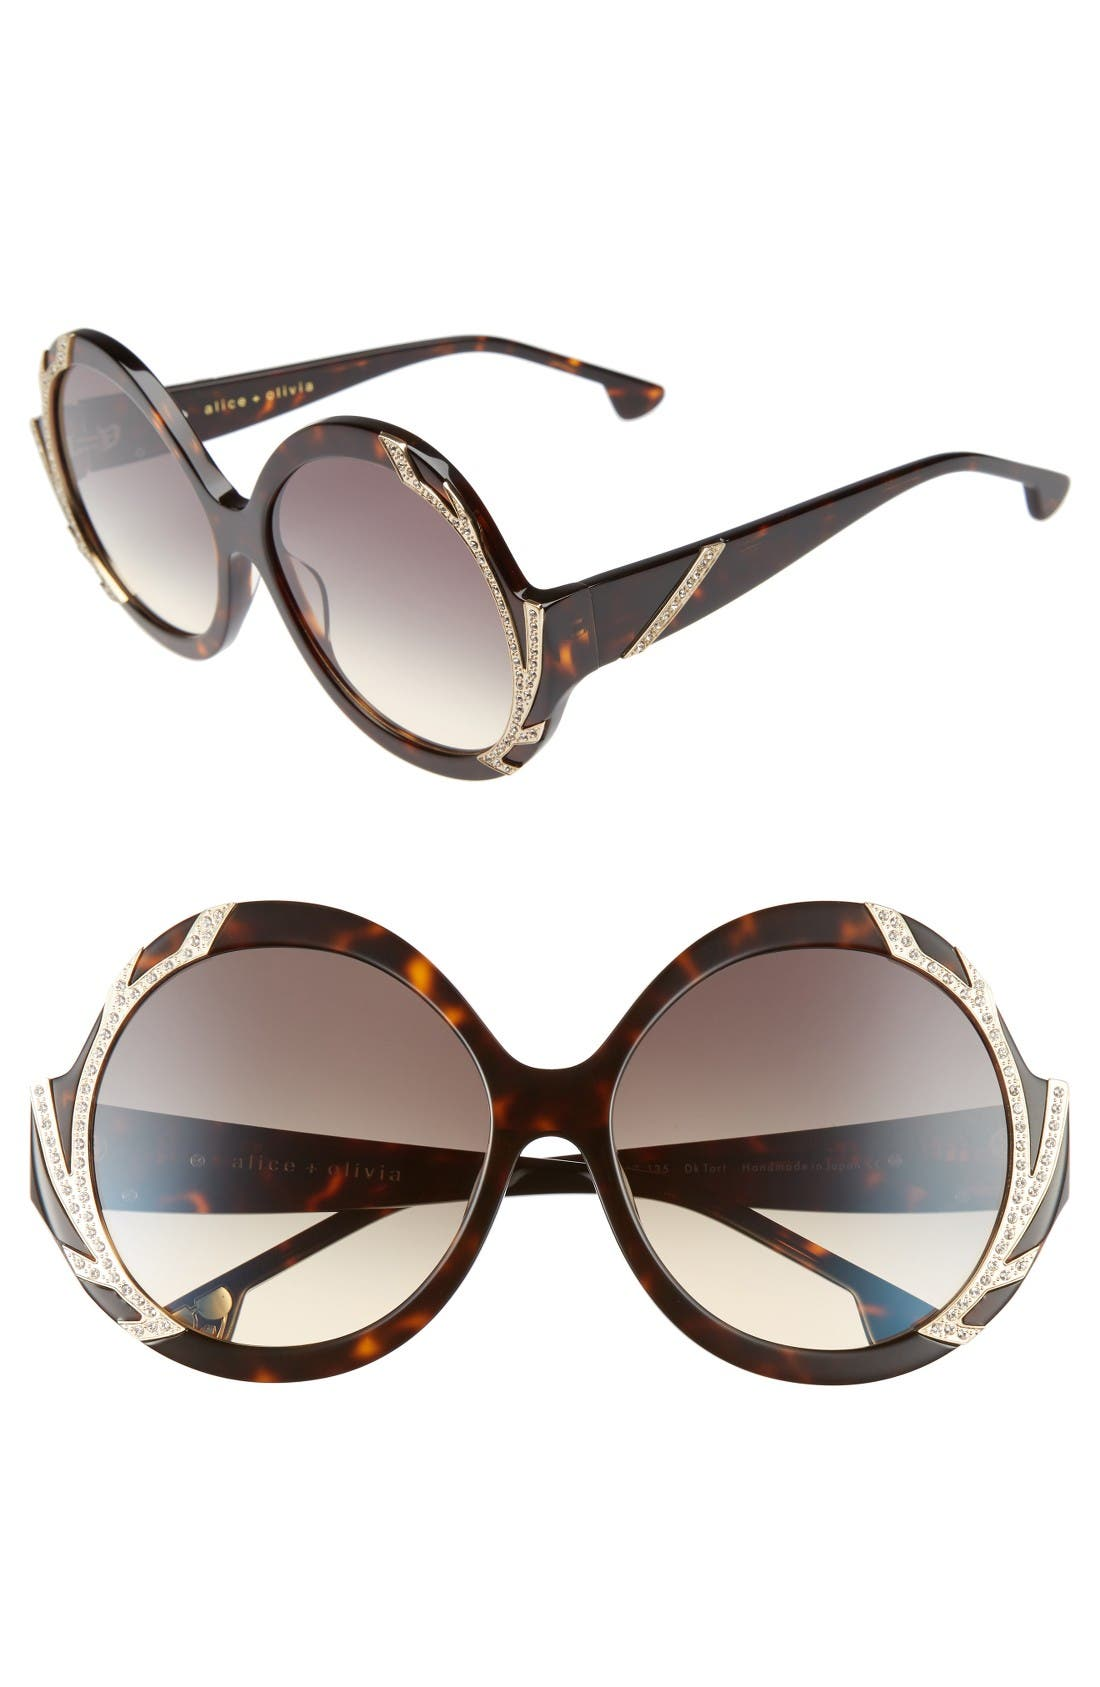 Main Image - Alice + Olivia Stacey Crystal 59mm Gradient Lens Round Sunglasses